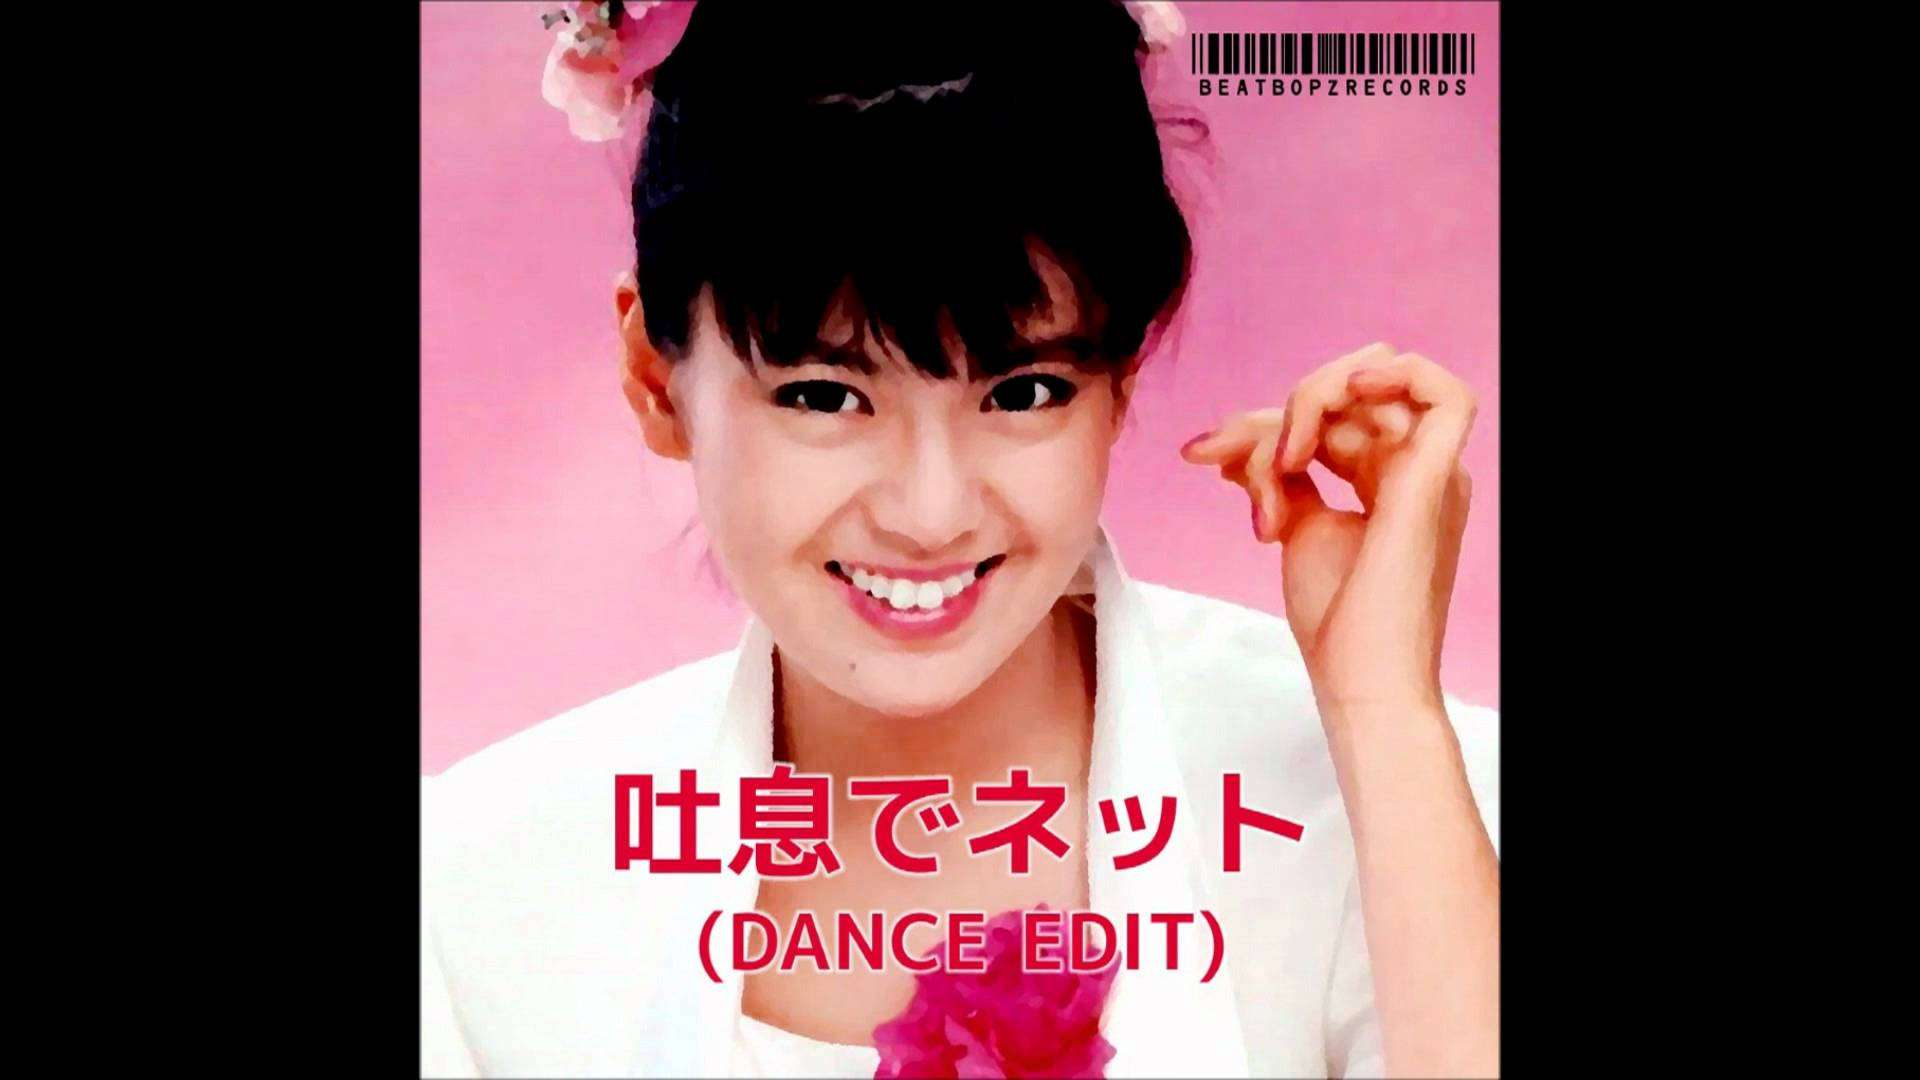 吐息でネット (DANCE EDIT) - YouTube